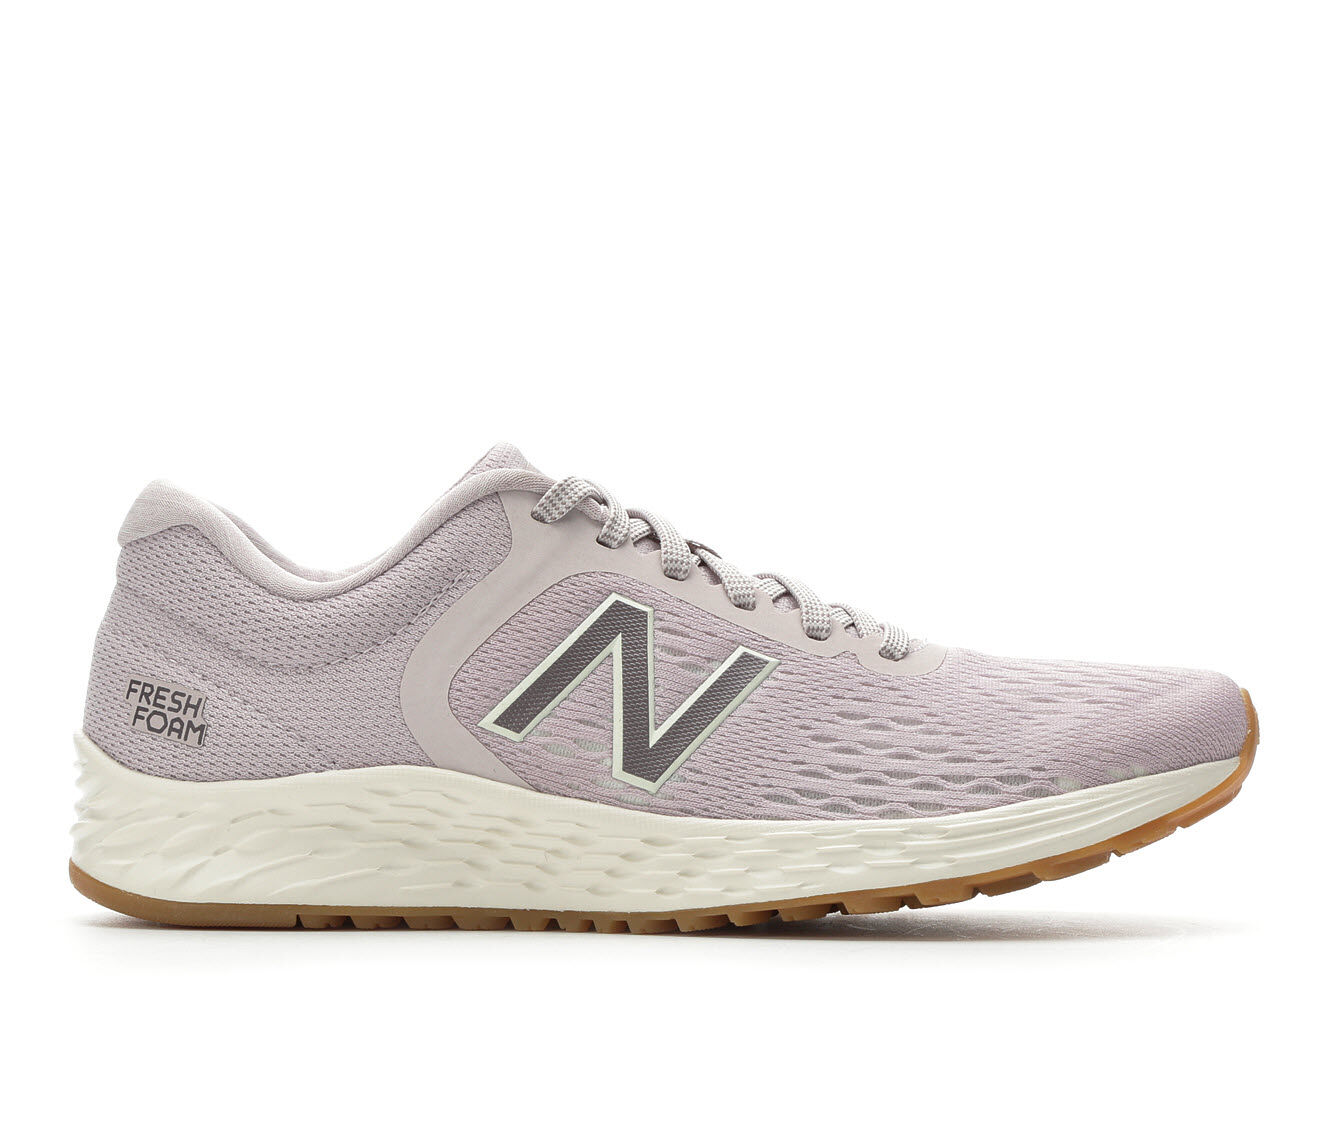 shop authentic new arrivals Women's New Balance Arishi v2 Sneakers Cashmere/Met